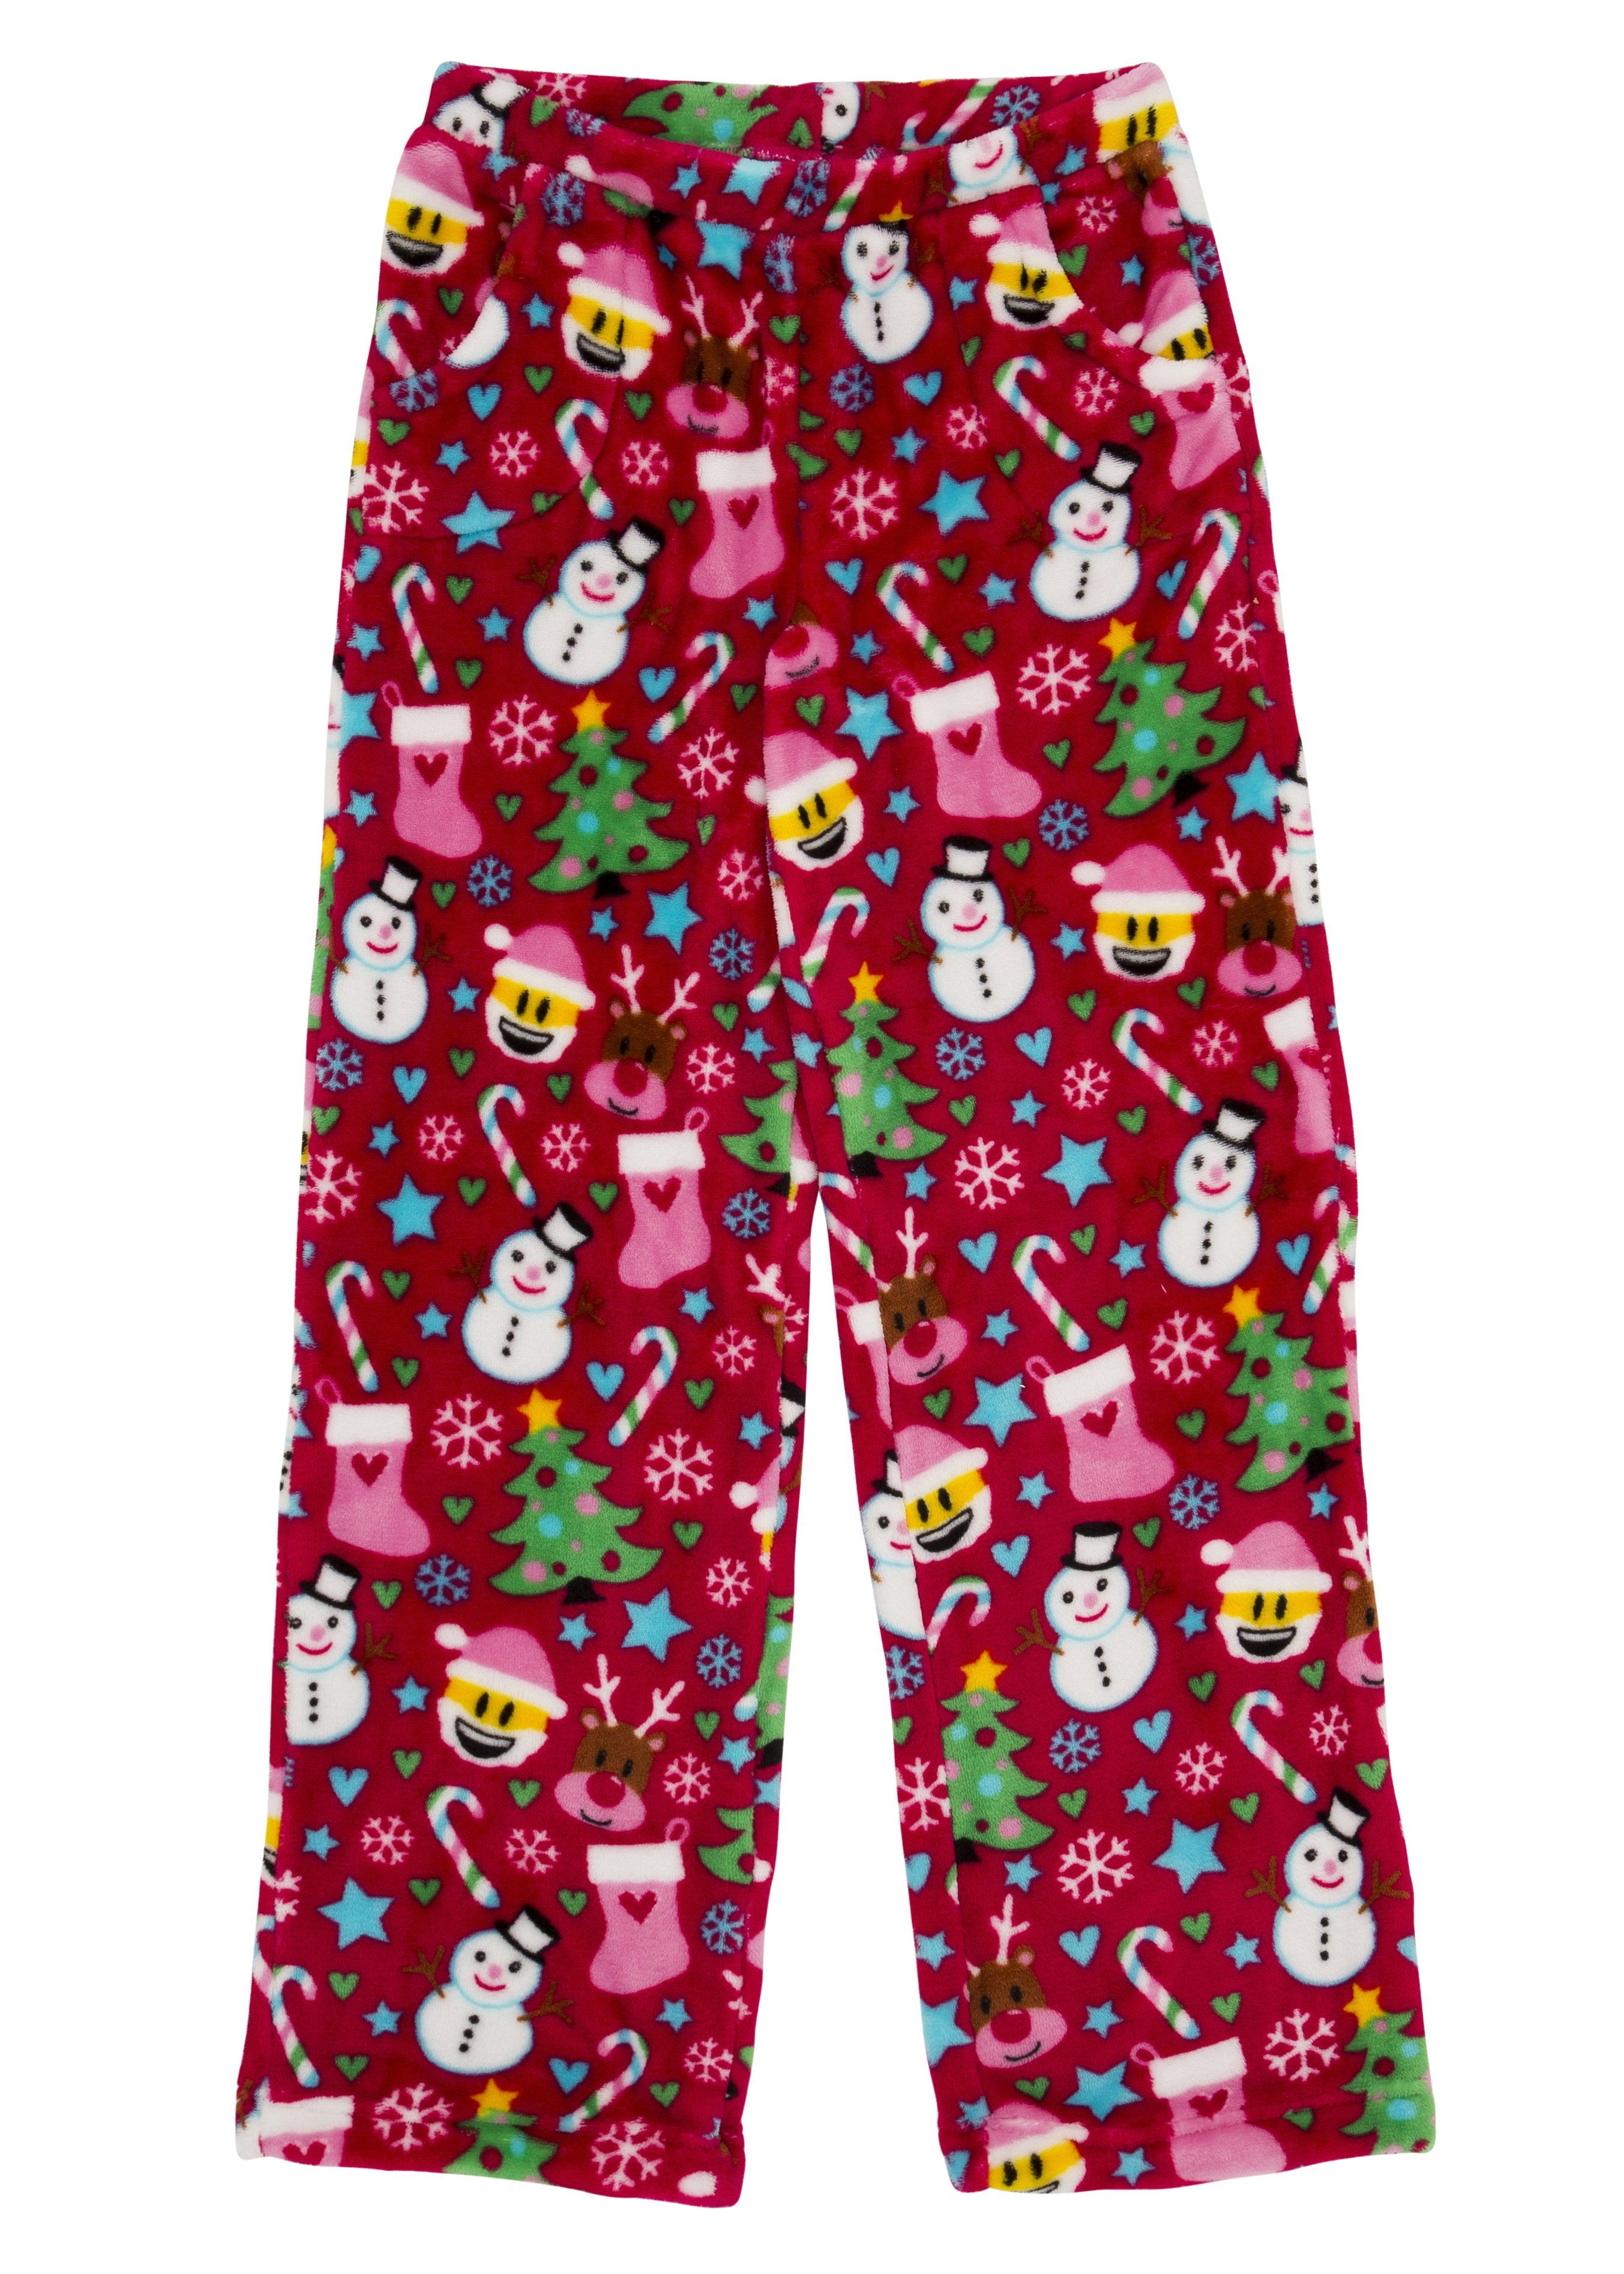 9f47ded30 Emoji Christmas Fuzzy PJ Pants by Candy Pink in 2019